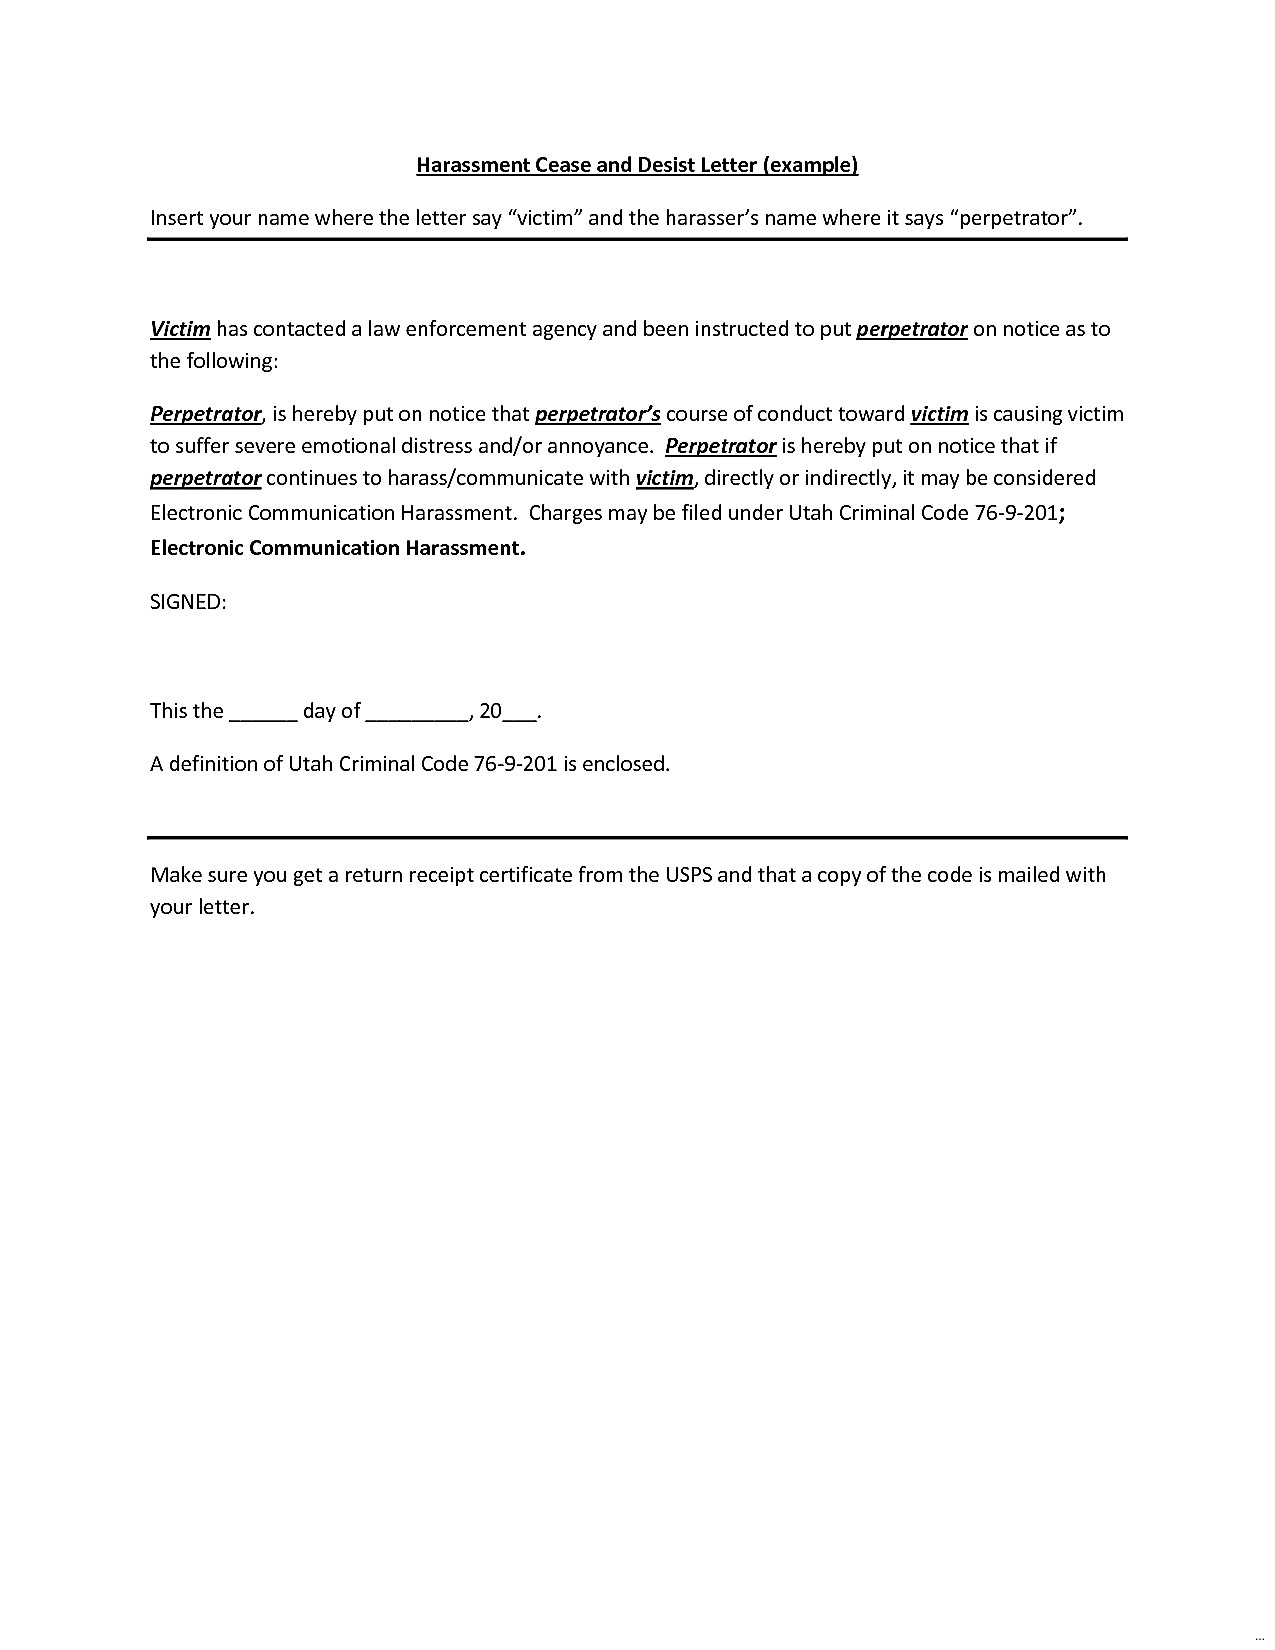 Cease and Desist Contact Letter Template - Cease and Desist Letter Template Itn Gctu Magnificent Harassment